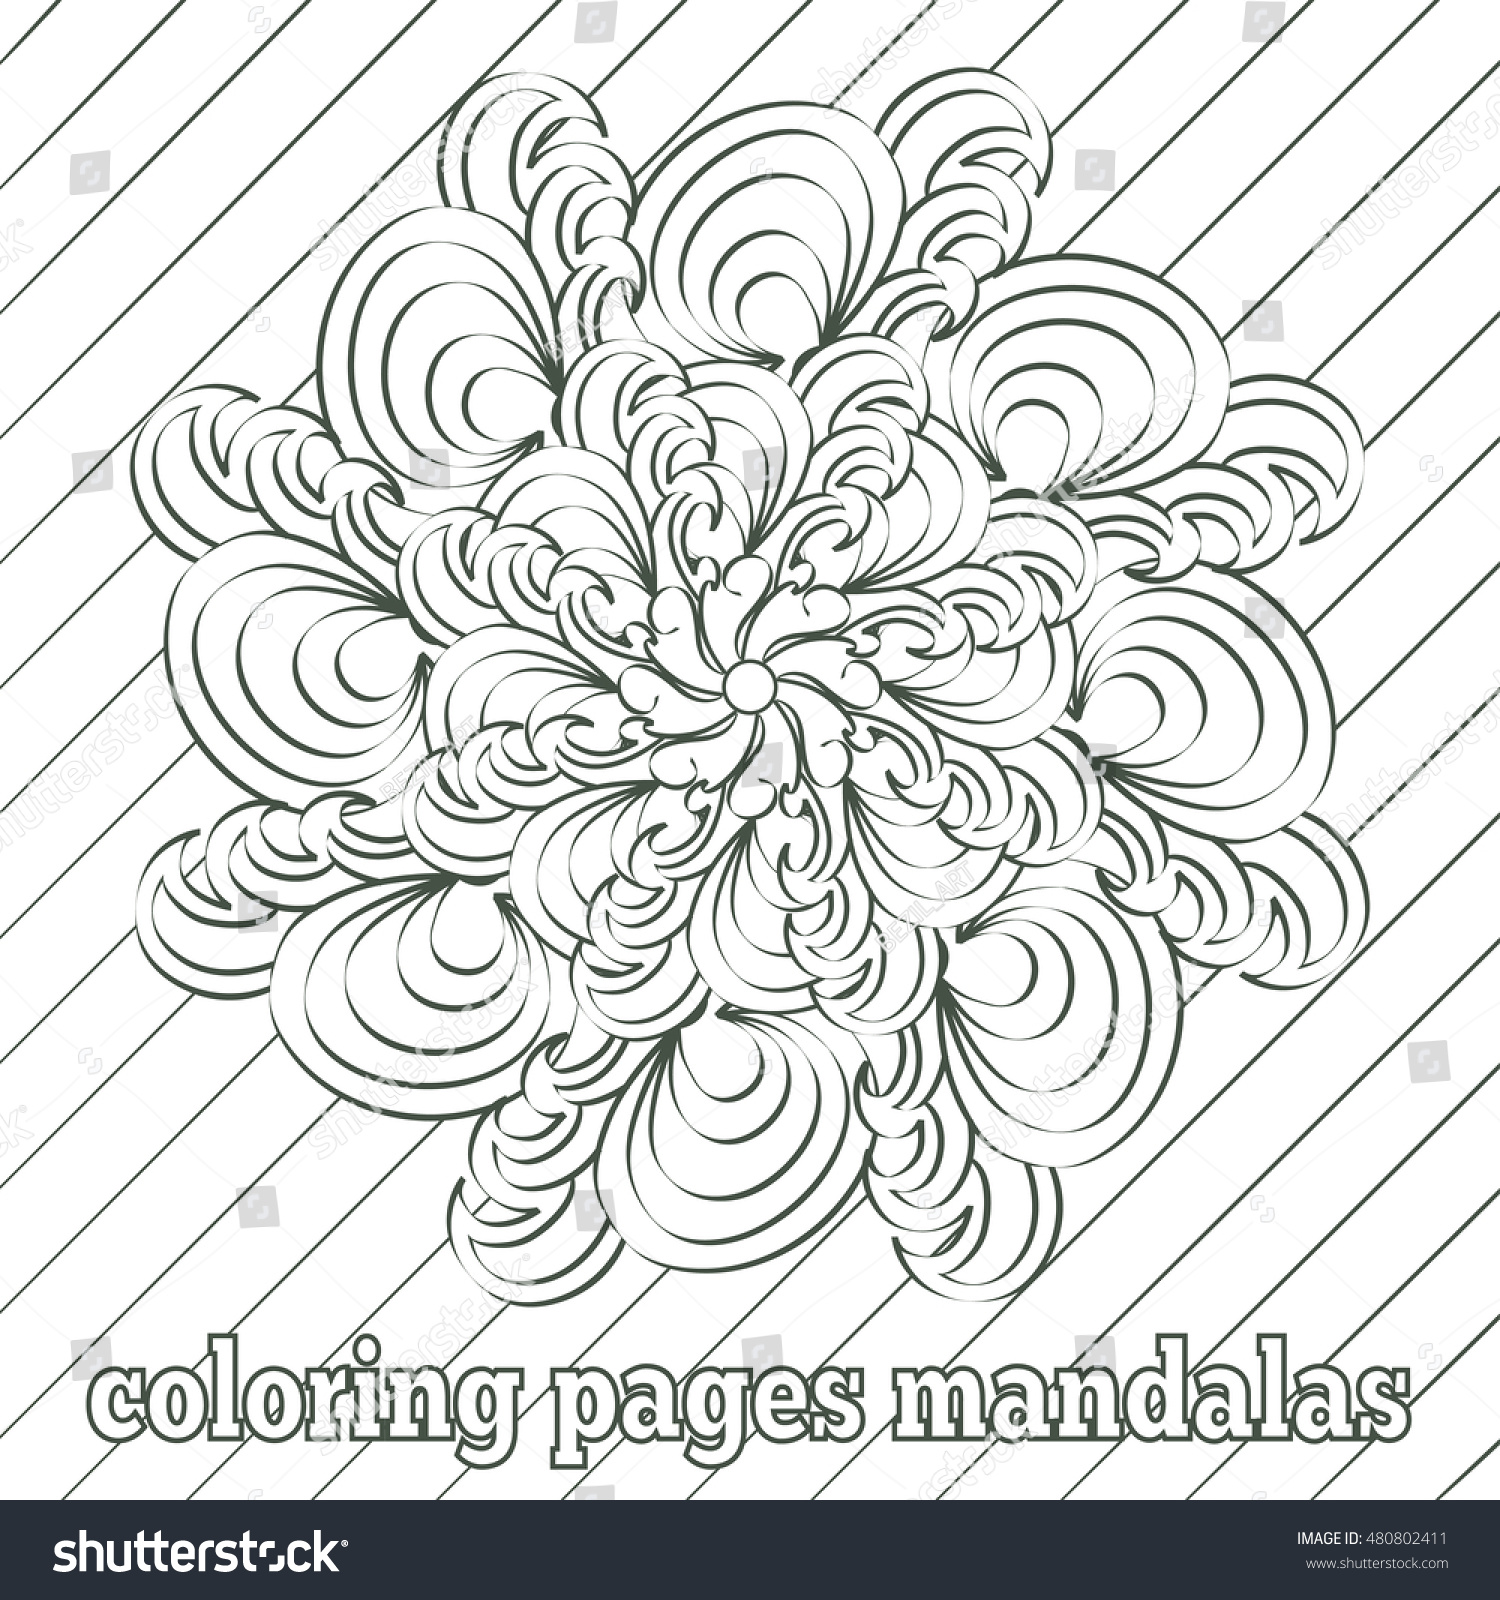 Mandala antistress coloring pages adults children stock Coloring books for adults india